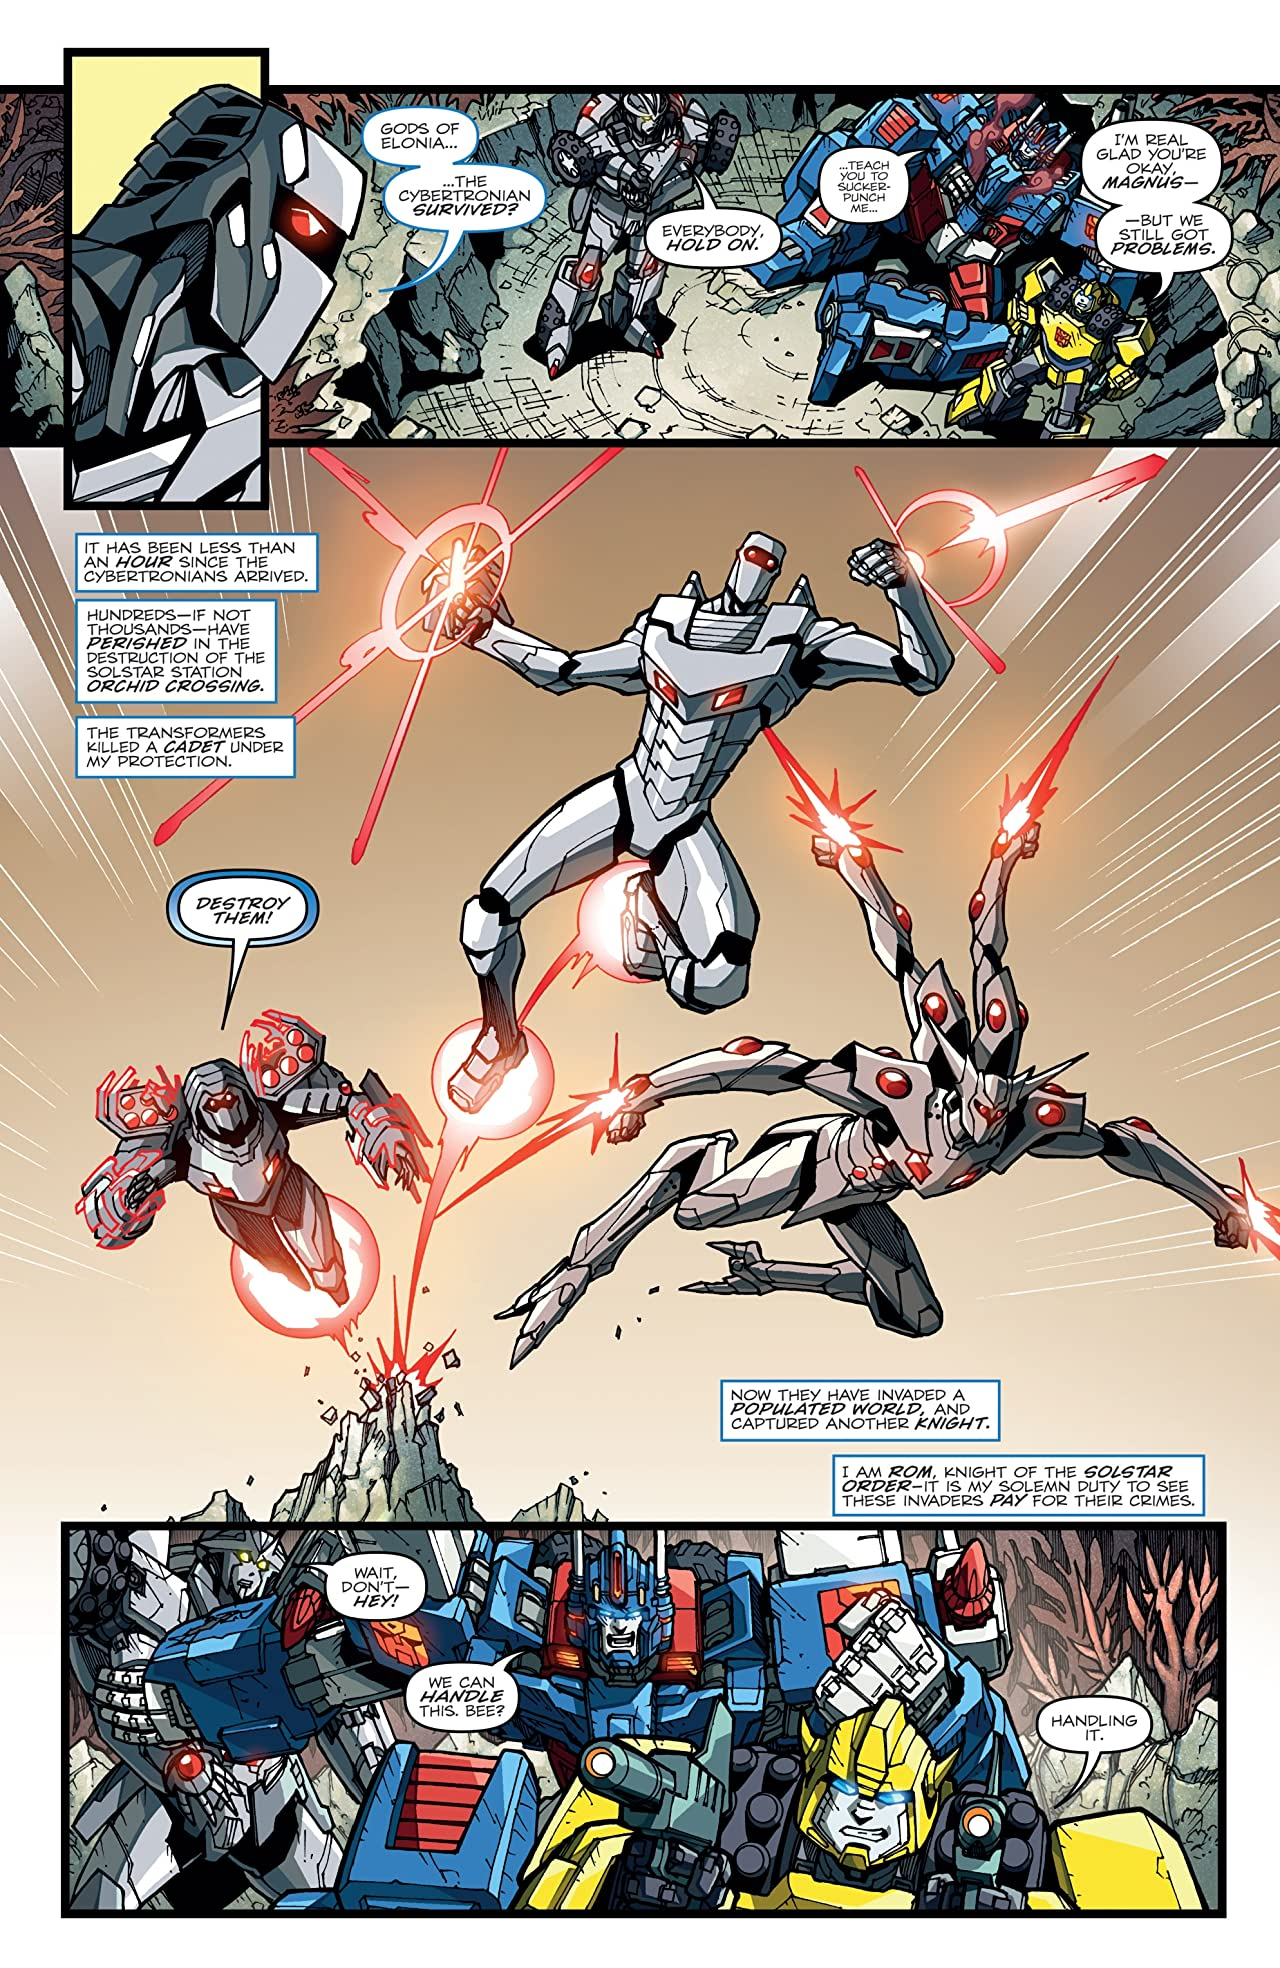 ROM vs. Transformers: Shining Armor #3